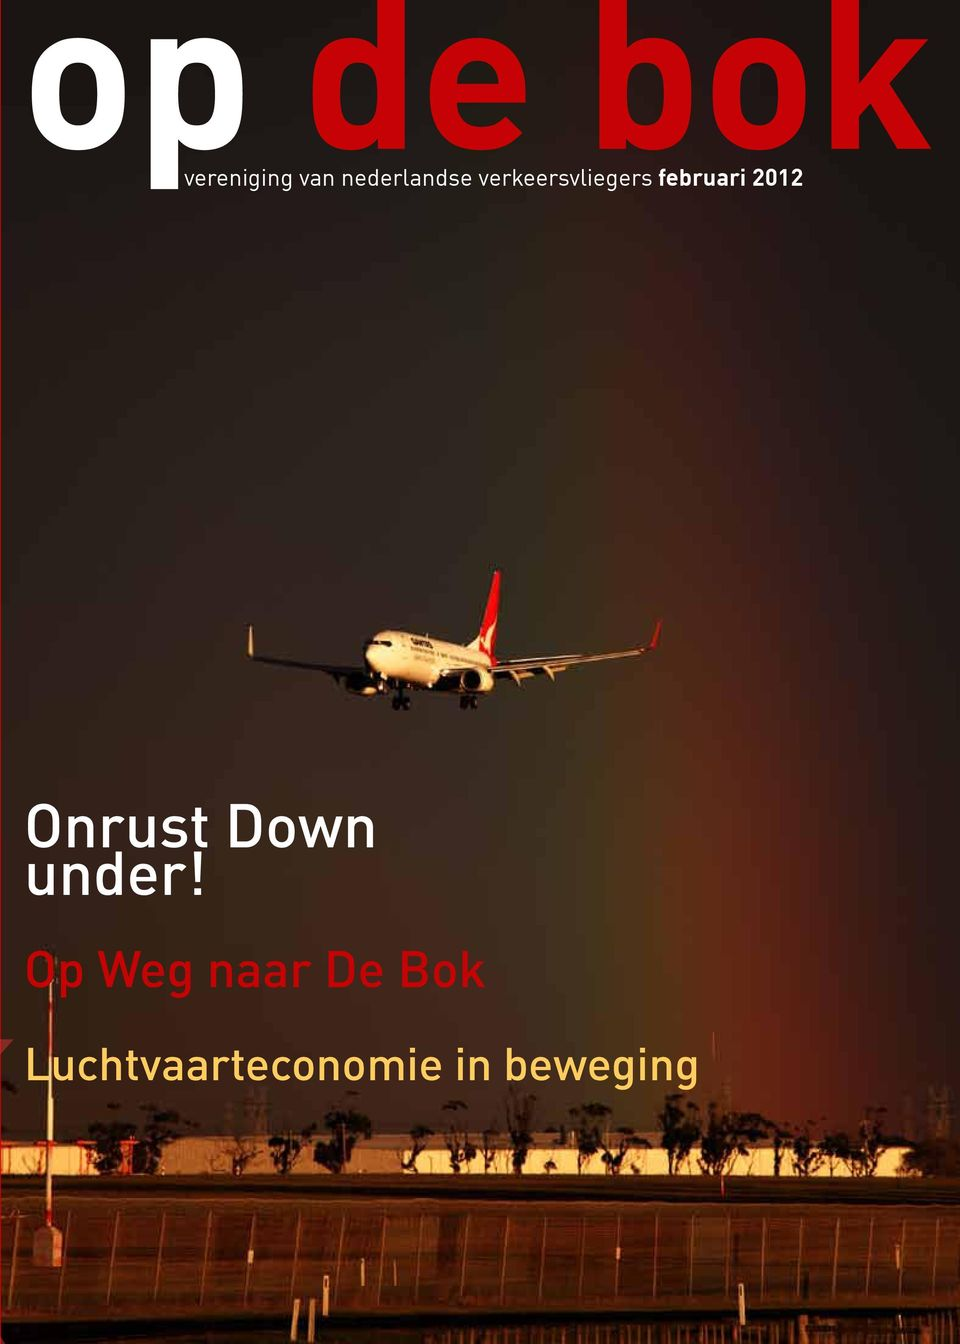 Onrust Down under!